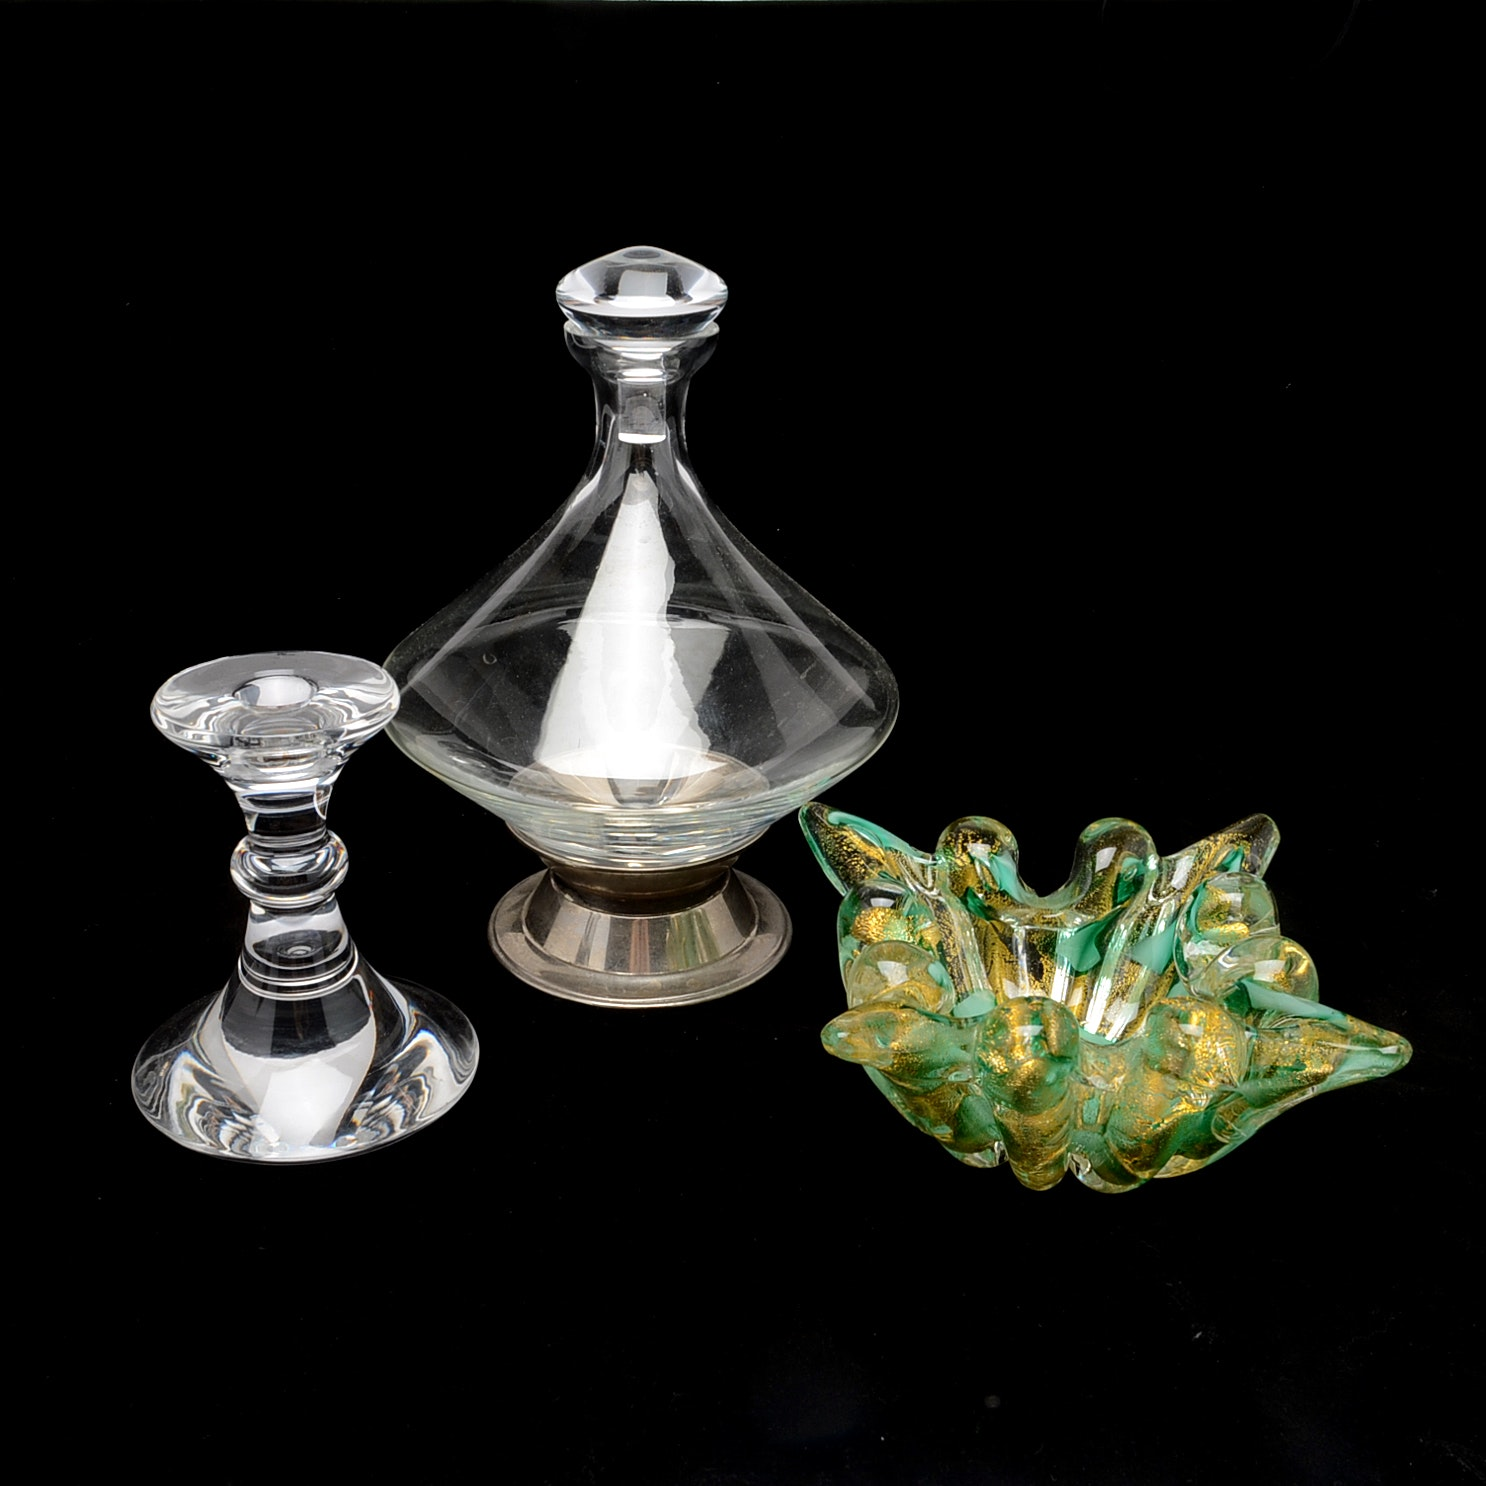 Decorative Glassware Featuring Val St. Lambert Crystal Candlestick Holder